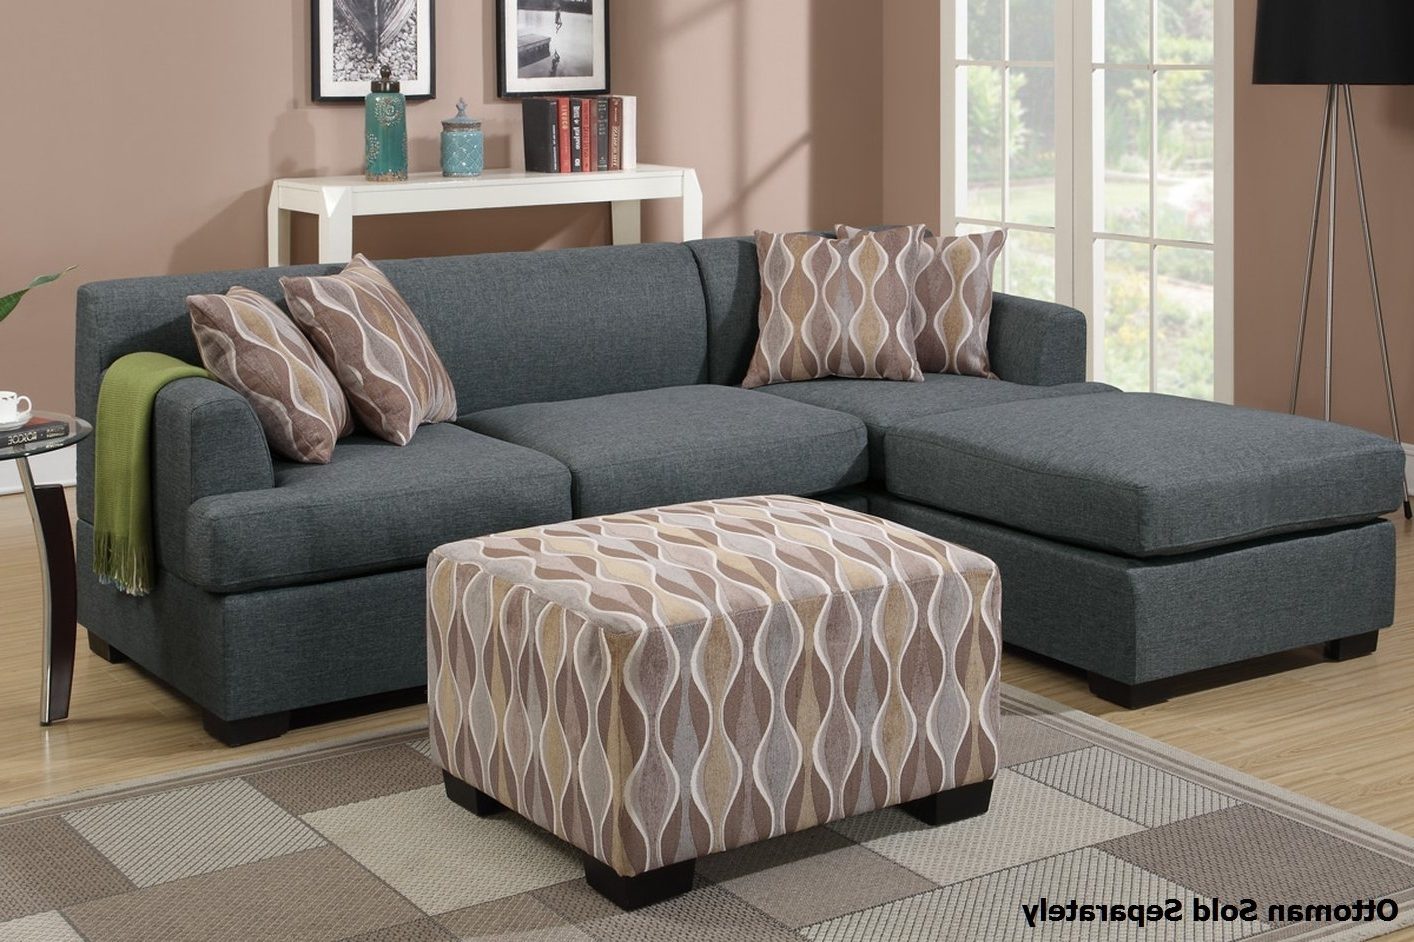 Fashionable Montreal Sectional Sofas Pertaining To Montreal Ii Grey Fabric Sectional Sofa – Steal A Sofa Furniture (View 4 of 15)